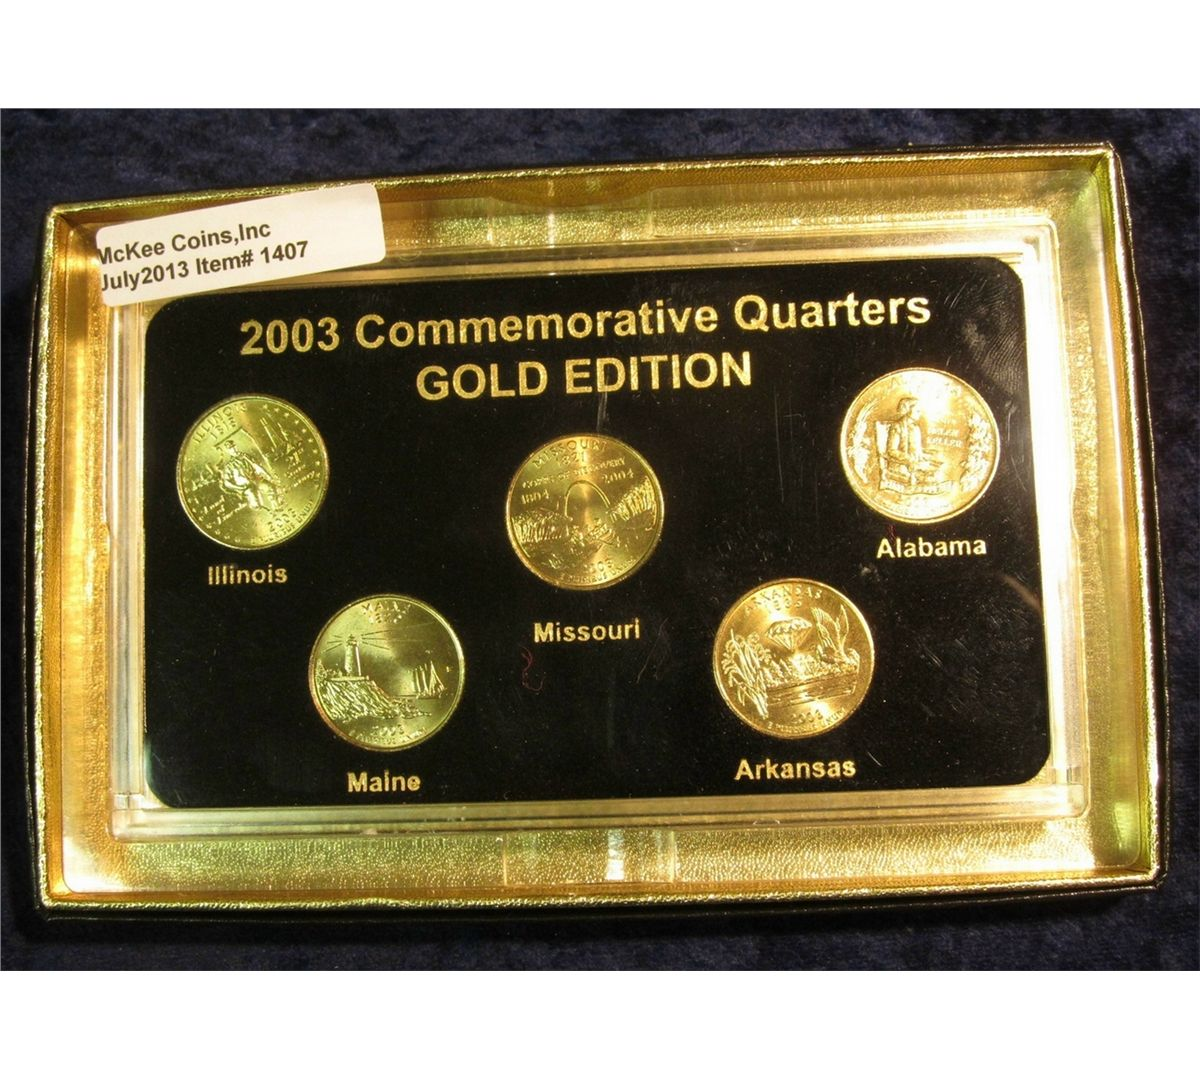 2003 Gold-plated Statehood Quarter Set in a special holder ...  sc 1 st  iCollector.com & 1407. 2003 Gold-plated Statehood Quarter Set in a special holder. (5 ...